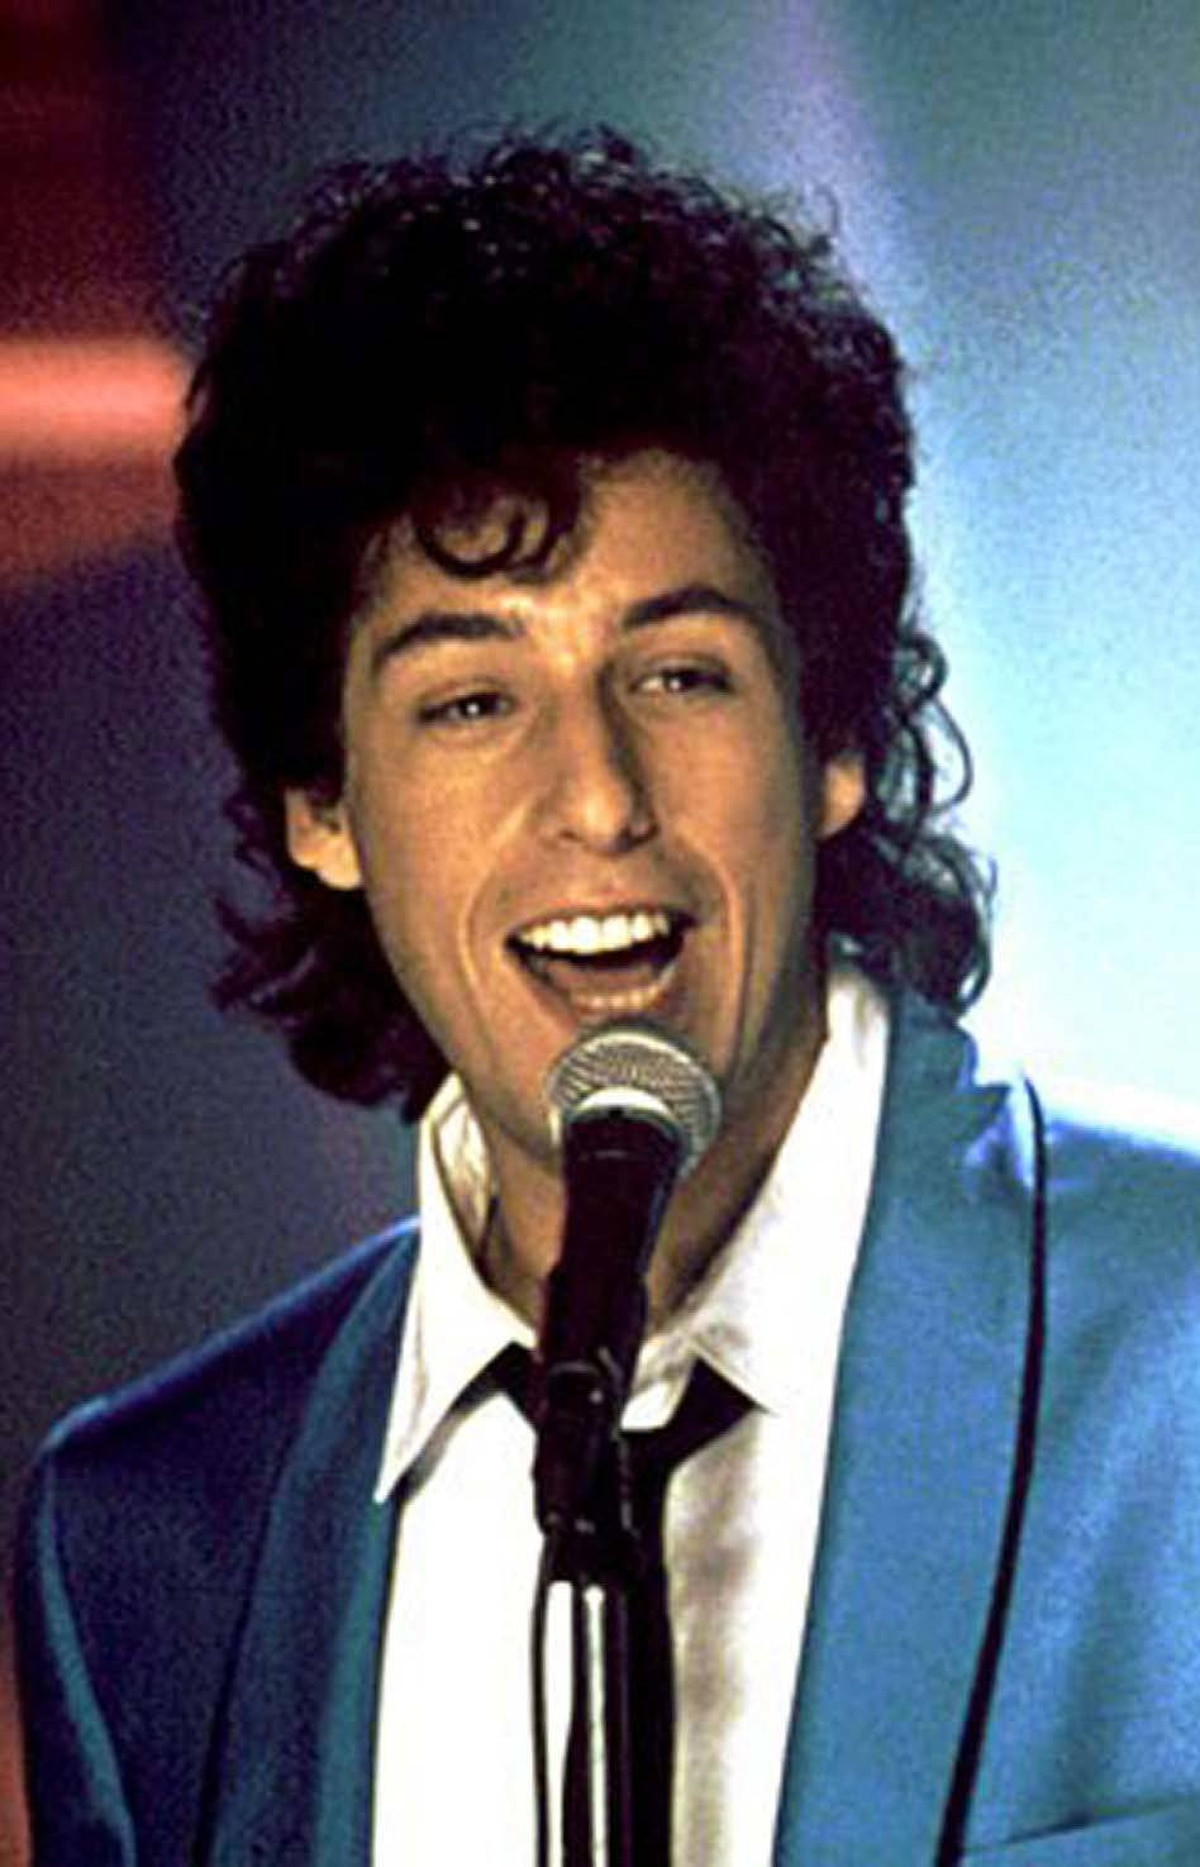 MOVIE The Wedding Singer MuchMusic, 10 p.m. Despite his tendency toward the low-brow, Adam Sandler essays a touching and believable character in this 1998 romantic-comedy, which was turned into a successful Broadway musical. Set in the glittery mid-eighties, the story casts Sandler as the professional singer Robbie Hart, whose band specializes in weddings (and occasionally bar mitzvahs). Robbie is bereft when dumped by his tarty girlfriend Linda (Angela Featherstone), but intrigued when he meets the sweet waitress Julia (Drew Barrymore). The bad news: Julia is already engaged to a yuppie jerk who is cheating on her at every opportunity. Watch for cameos by Jon Lovitz, Steve Buscemi and, as himself, eighties rock icon Billy Idol.